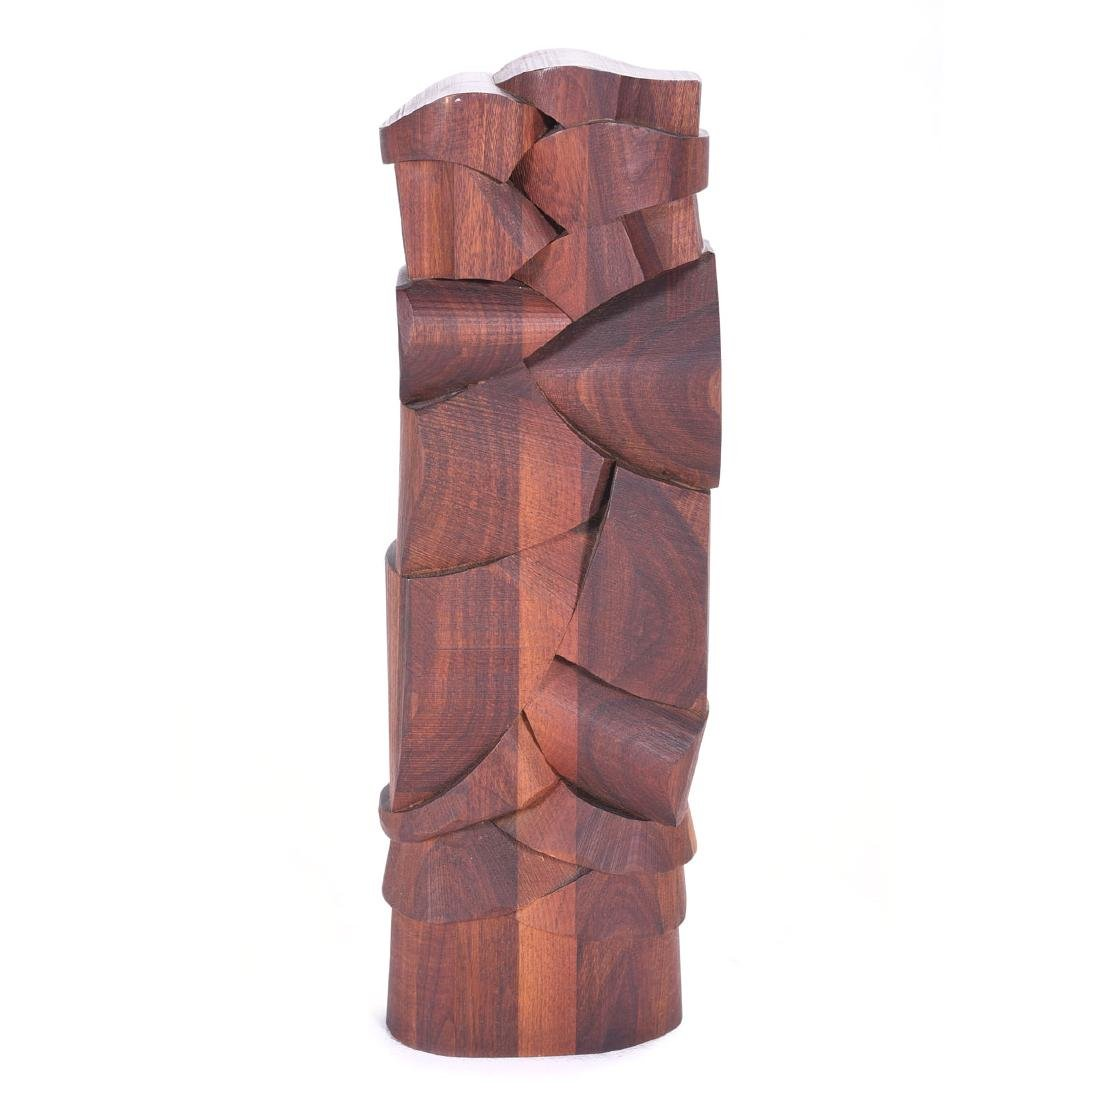 Carved Abstracted Redwood, Jim Fuller